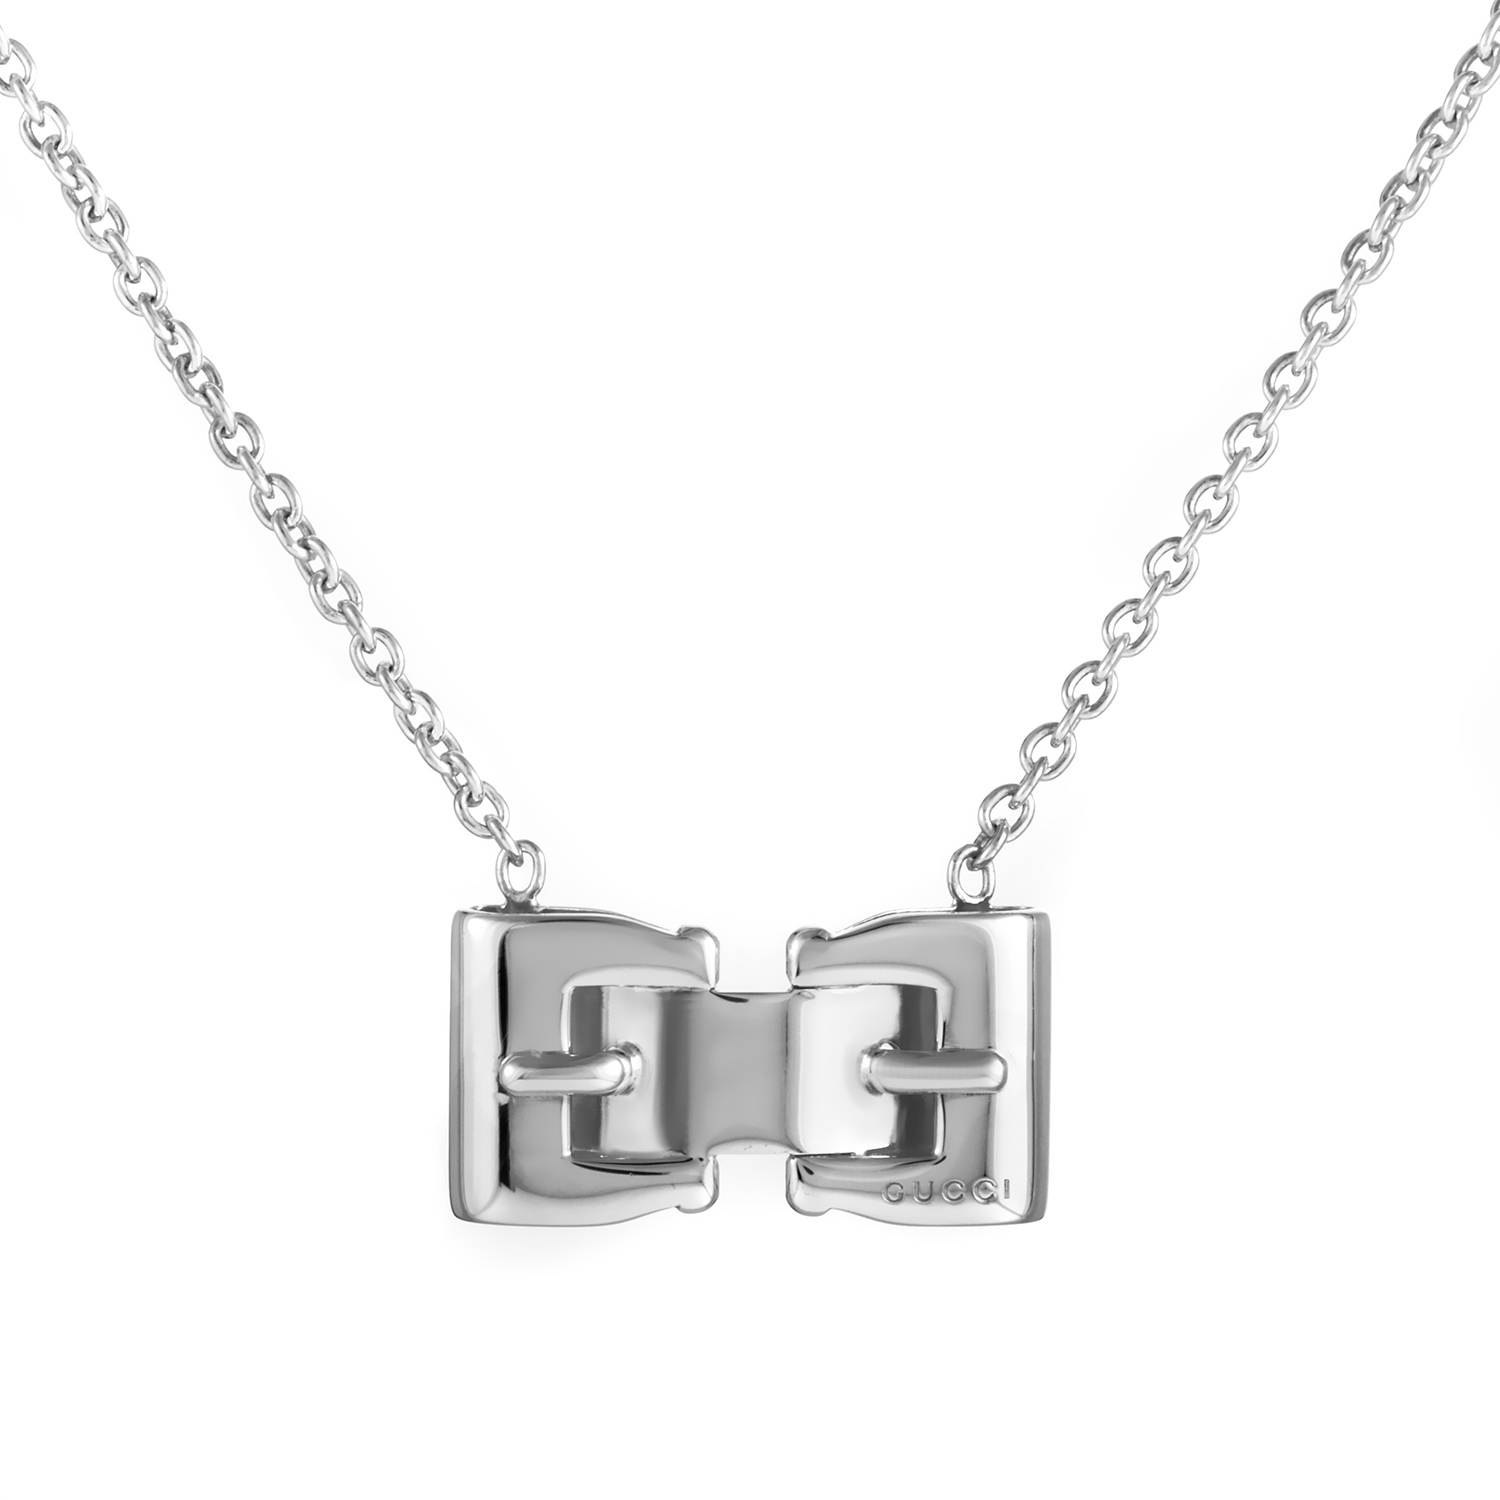 Fibbia Sterling Silver Pendant Necklace